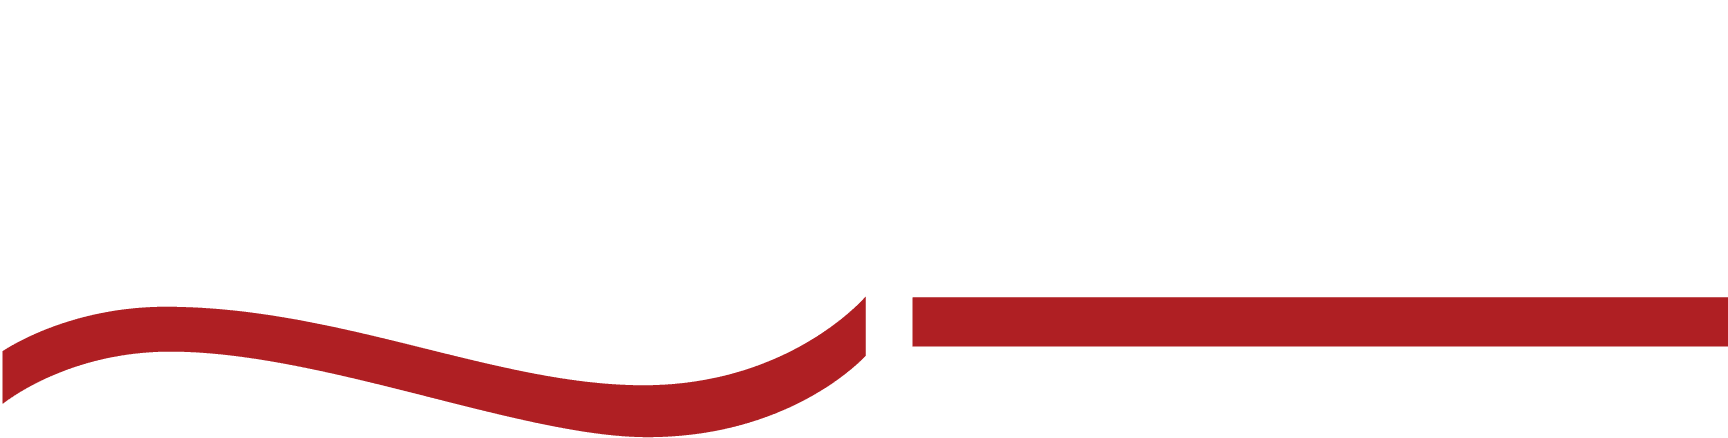 SpeakWrite Official Logo, Light Version, 2019. All rights reserved.